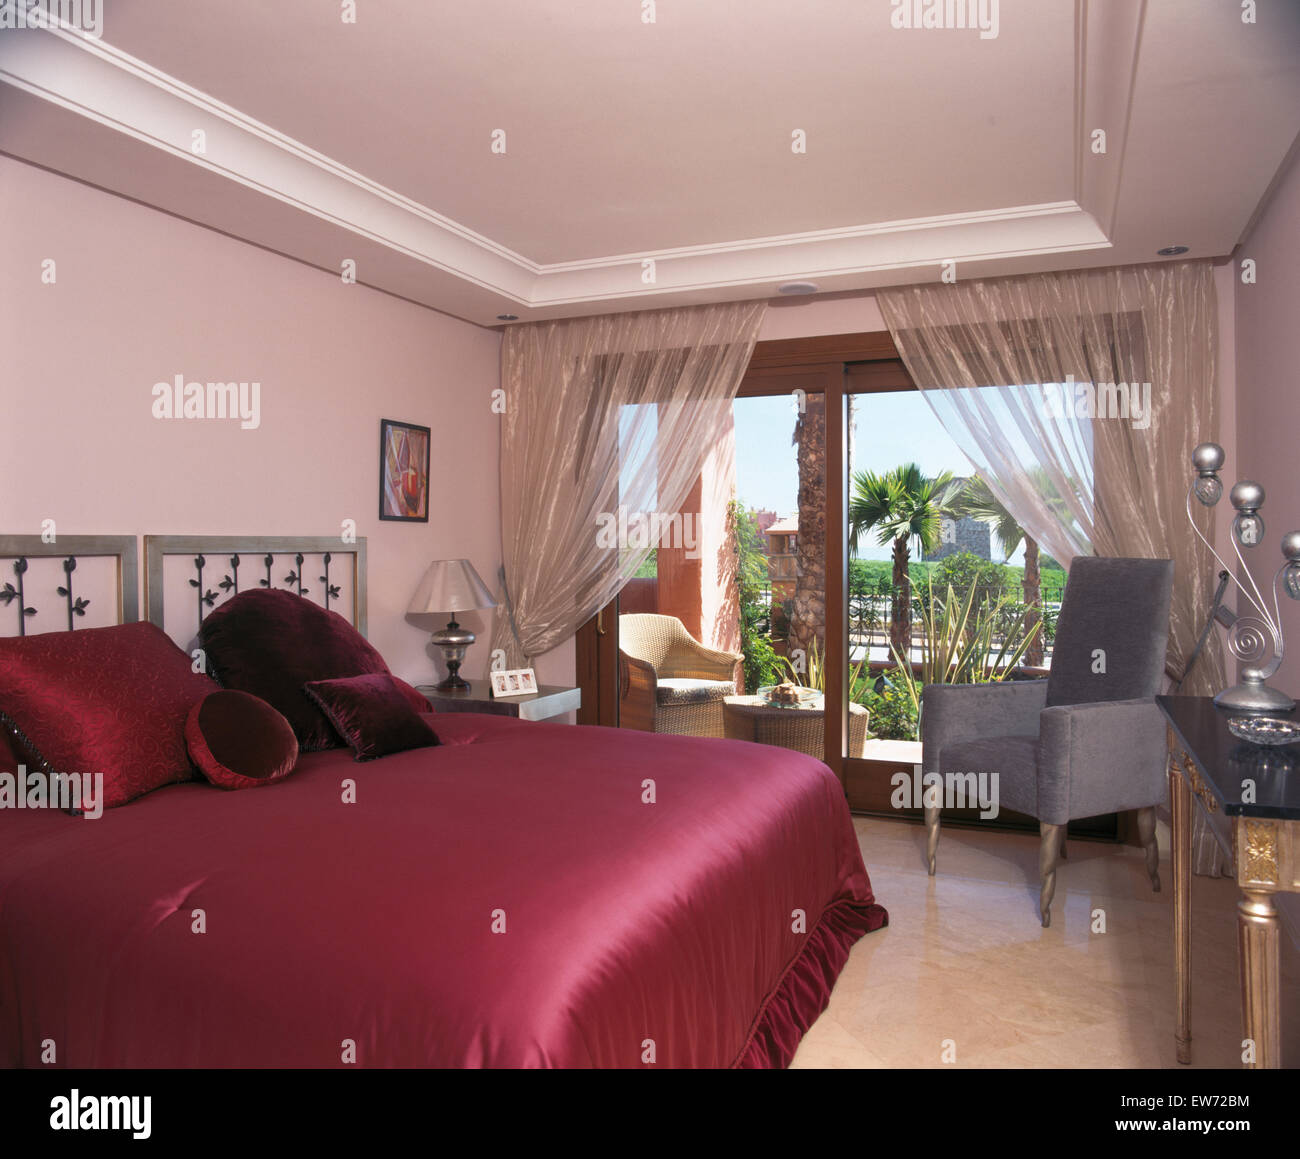 Dark Pink Satin Bed Cover On Bed In Spanish Apartment Bedroom With Sheer  Organza Drapes On Patio Doors